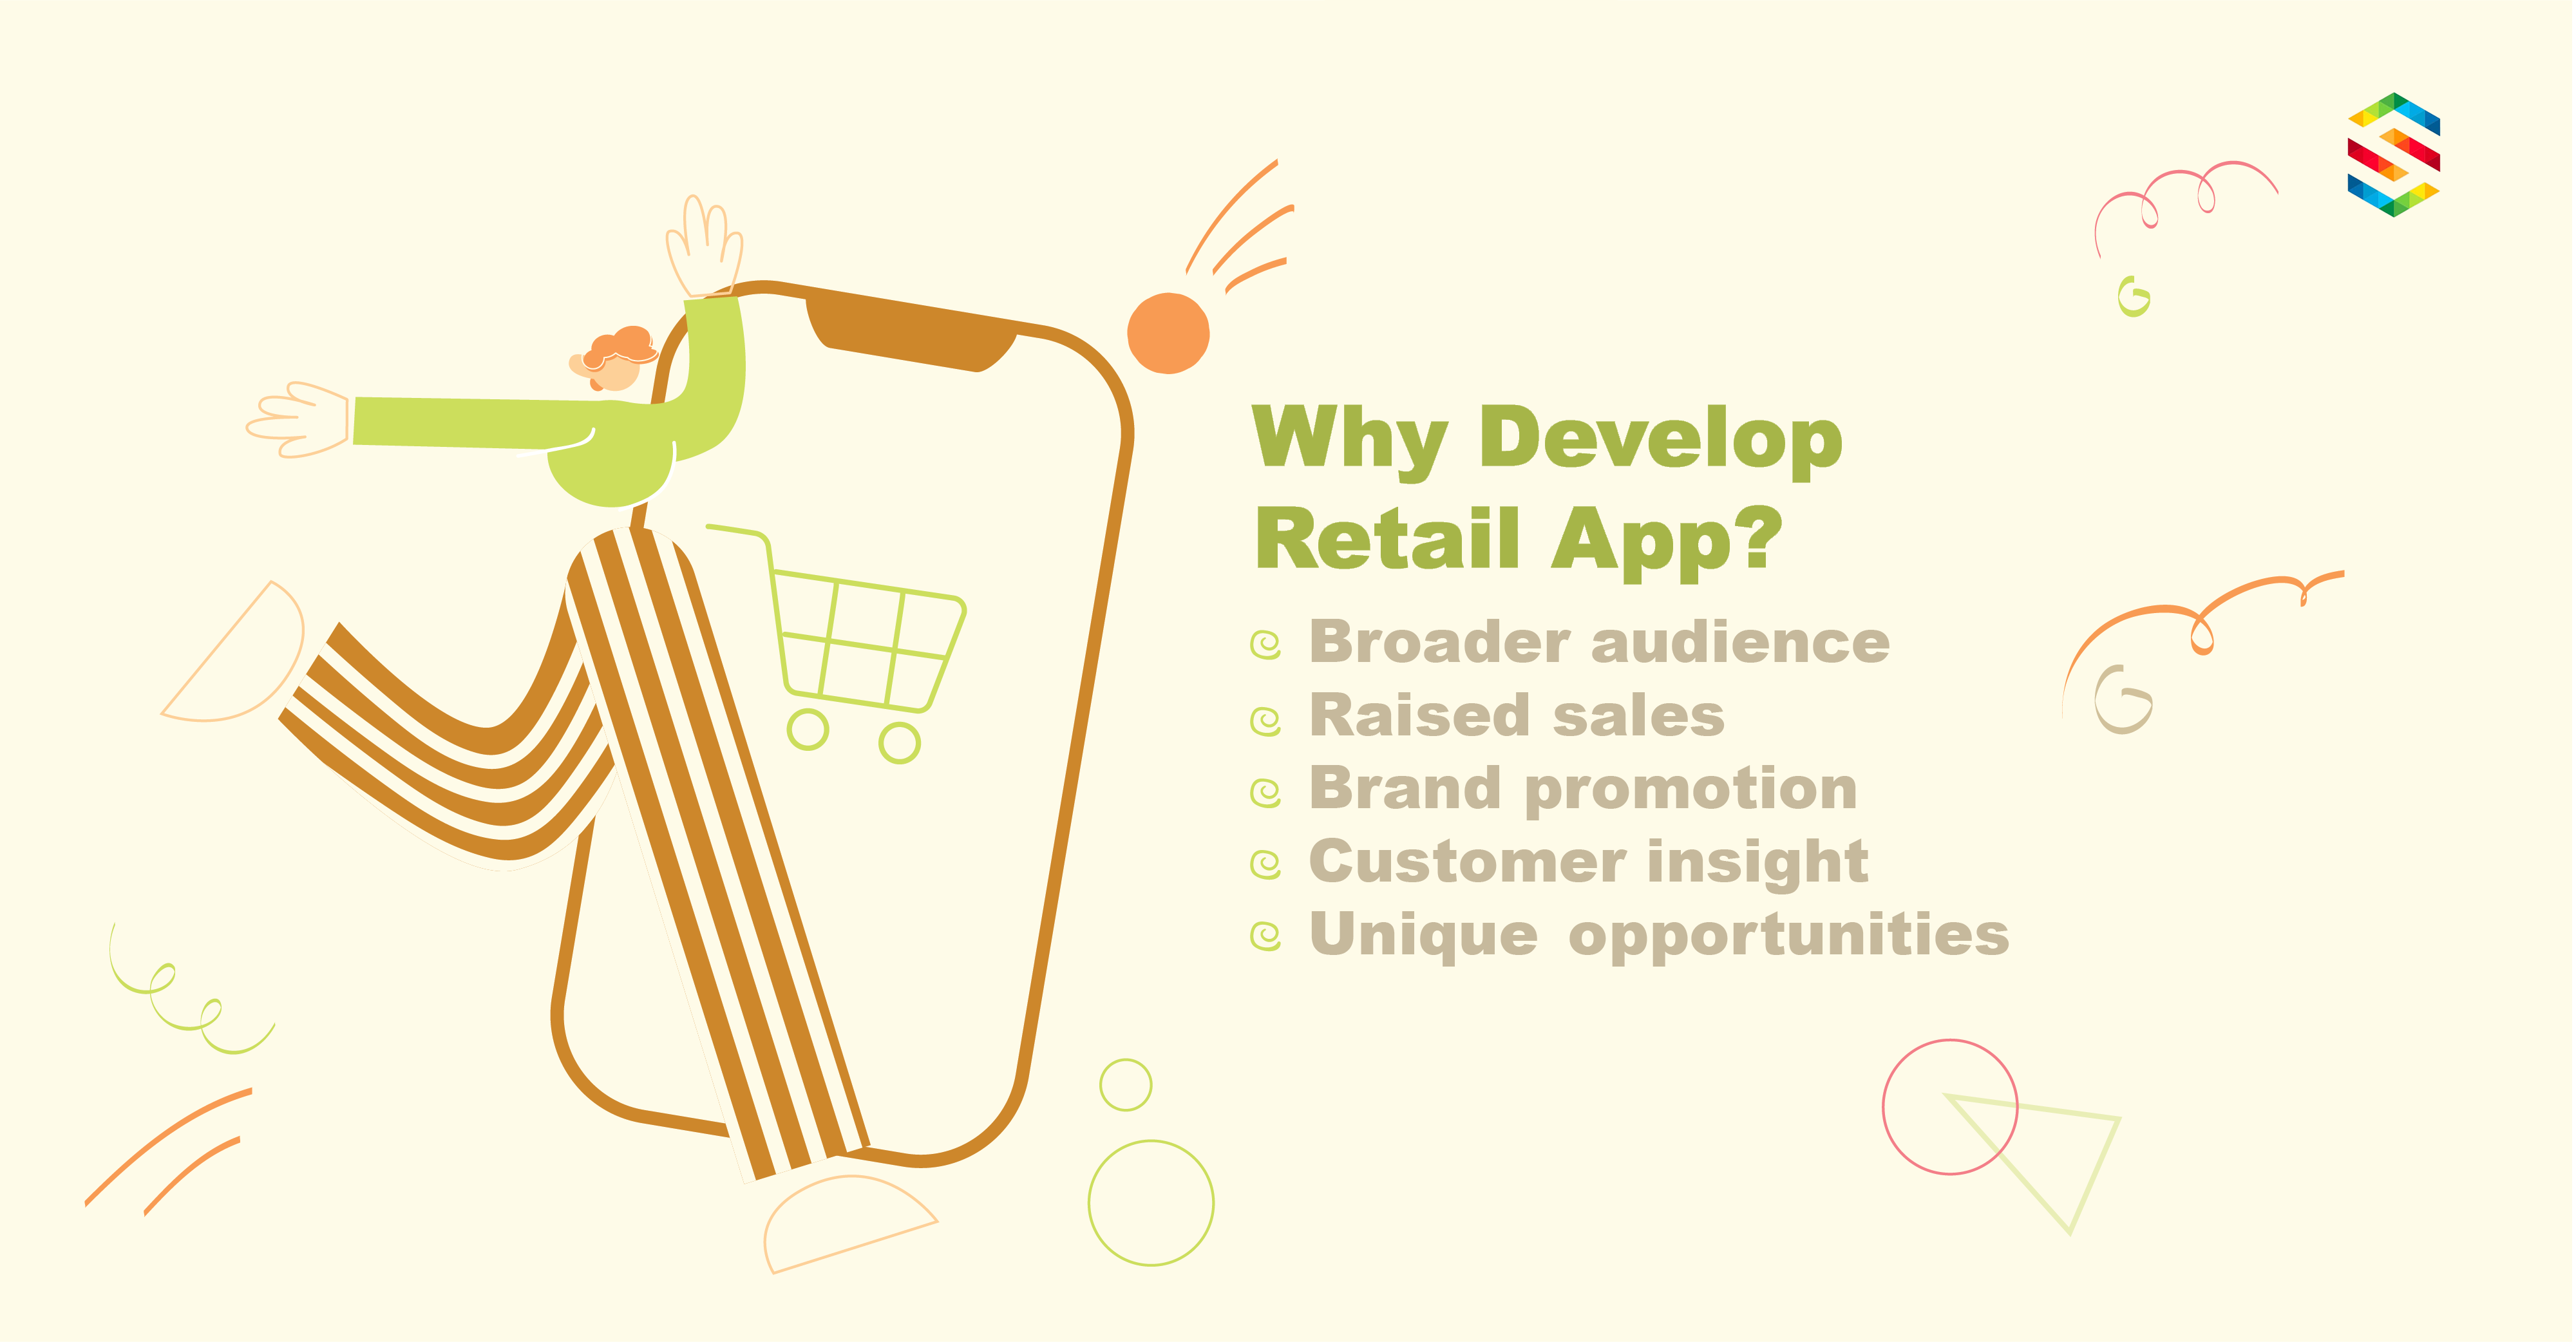 Why develop retail app